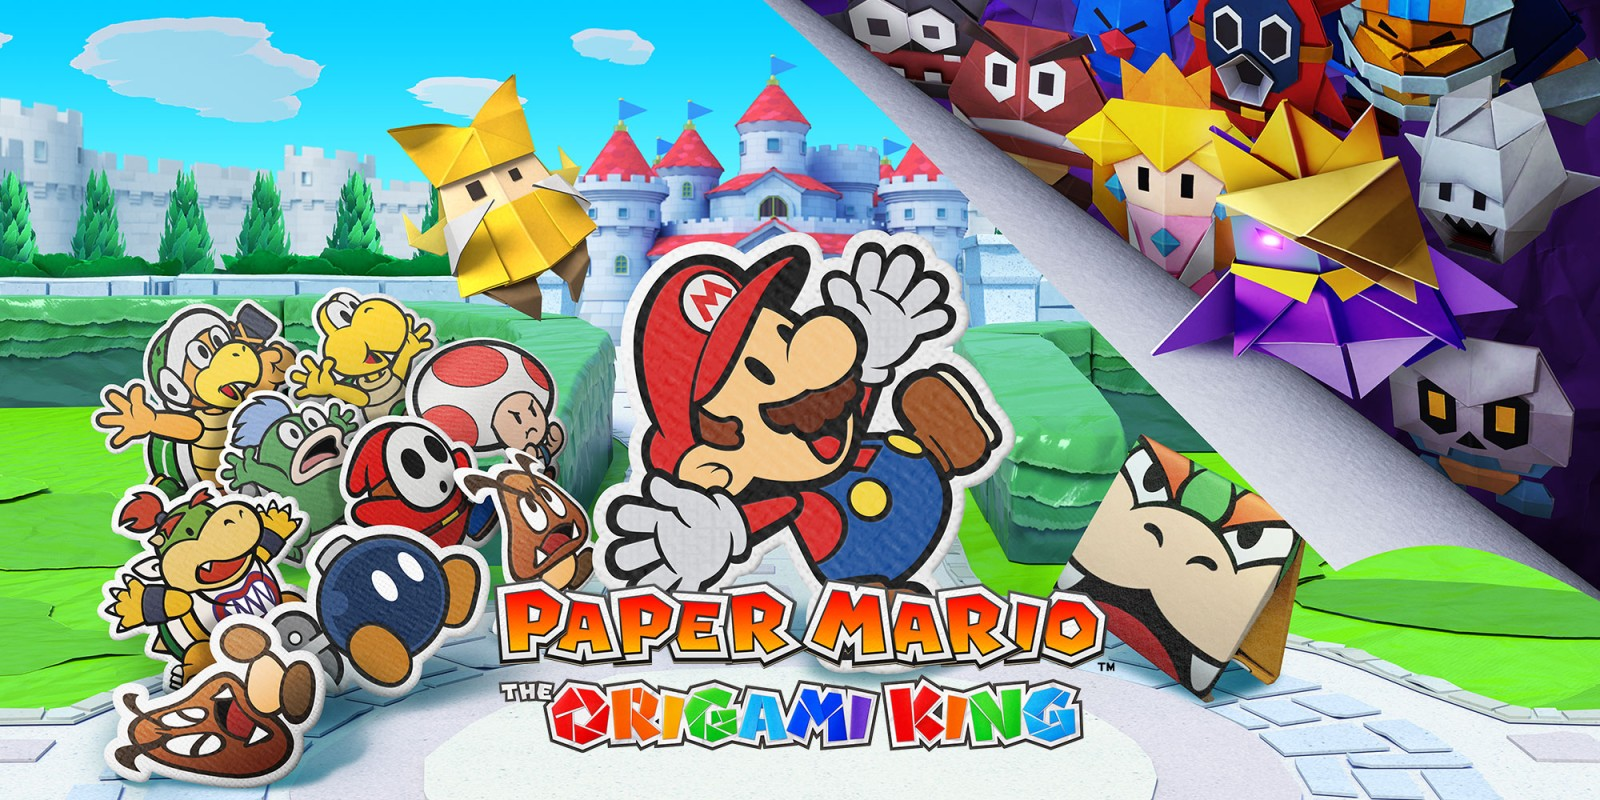 RPG / Paper Mario - The Origami King